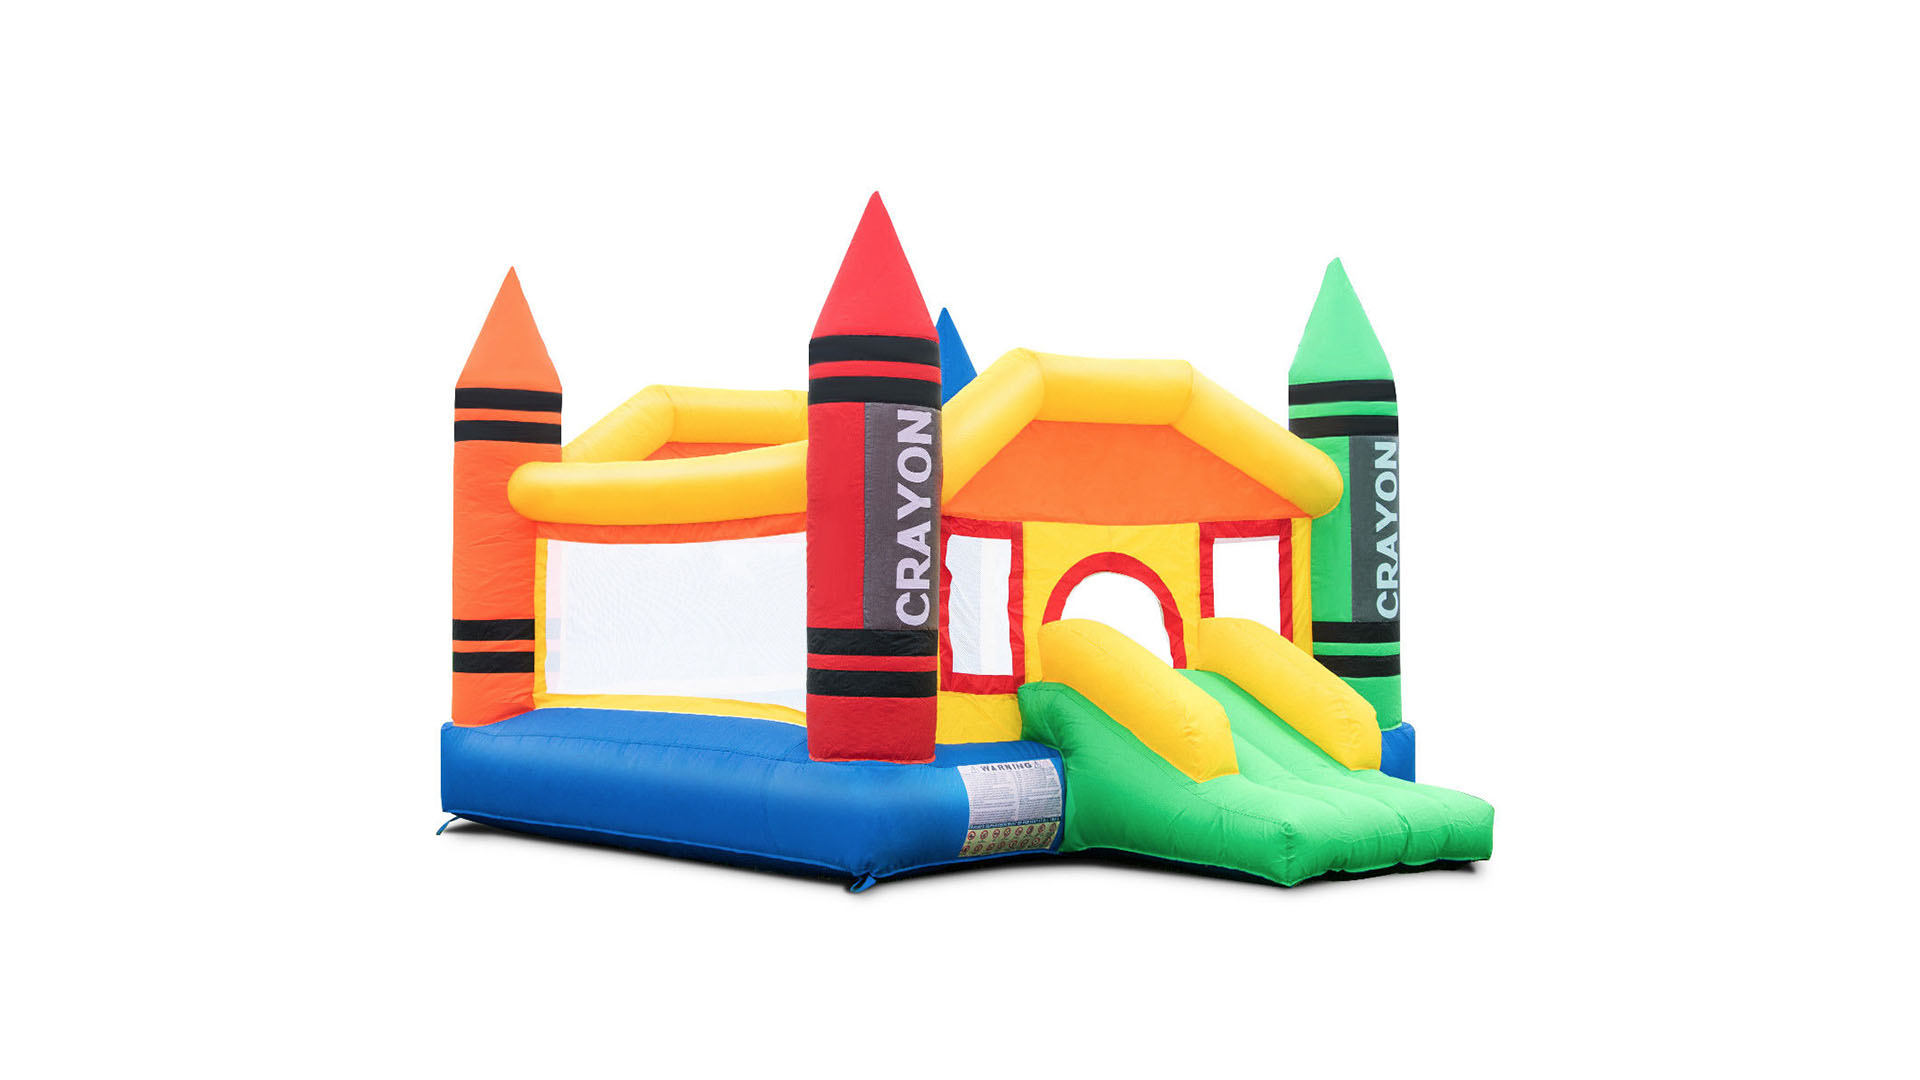 awesome-things-kids-backyard-costway-inflatable-bounce-castle